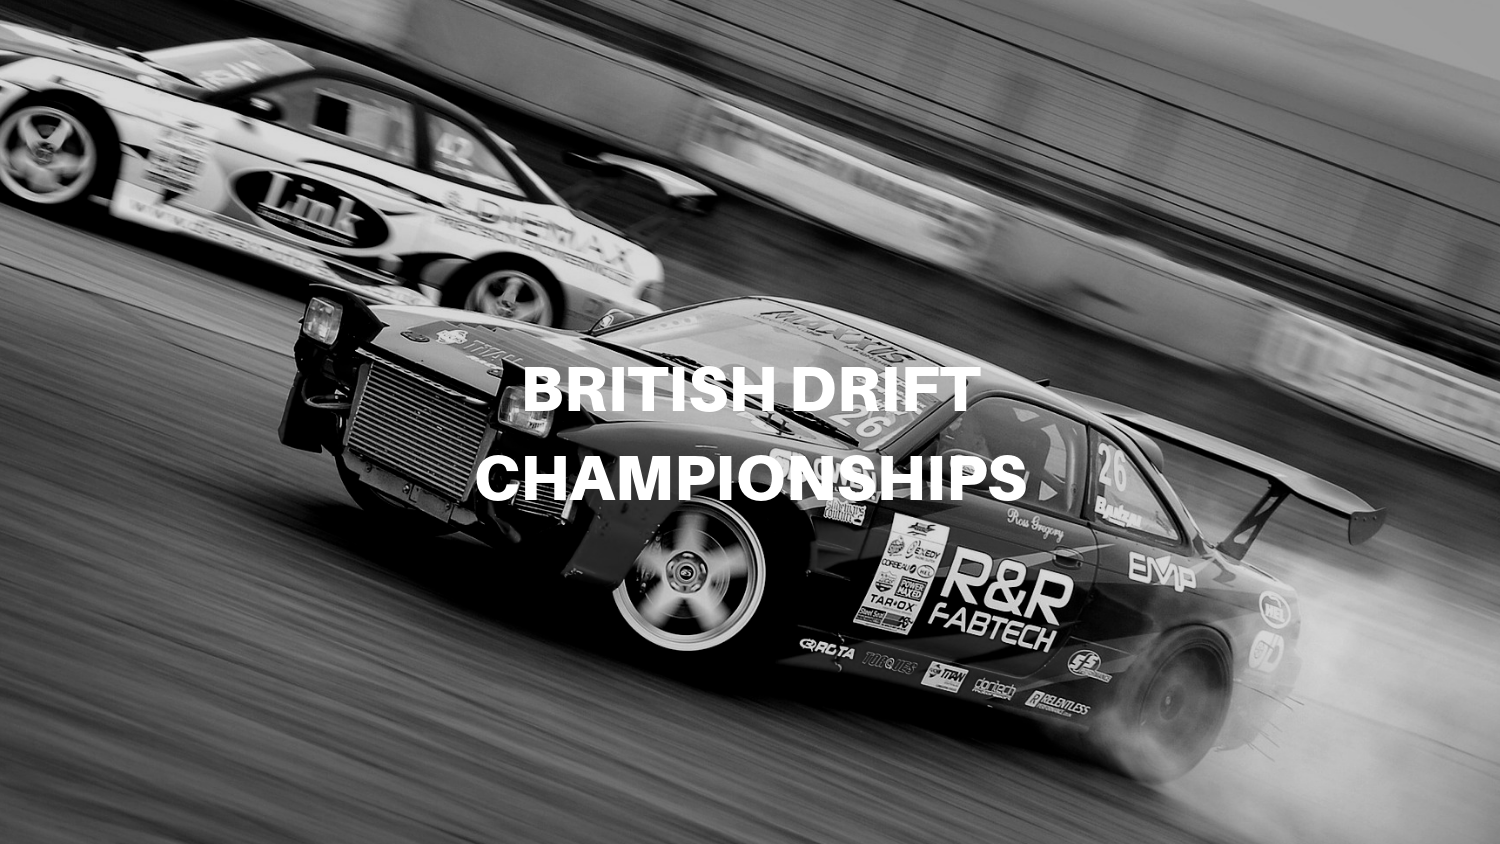 British Drift Championships - A new live broadcast for a classic British motorsport series